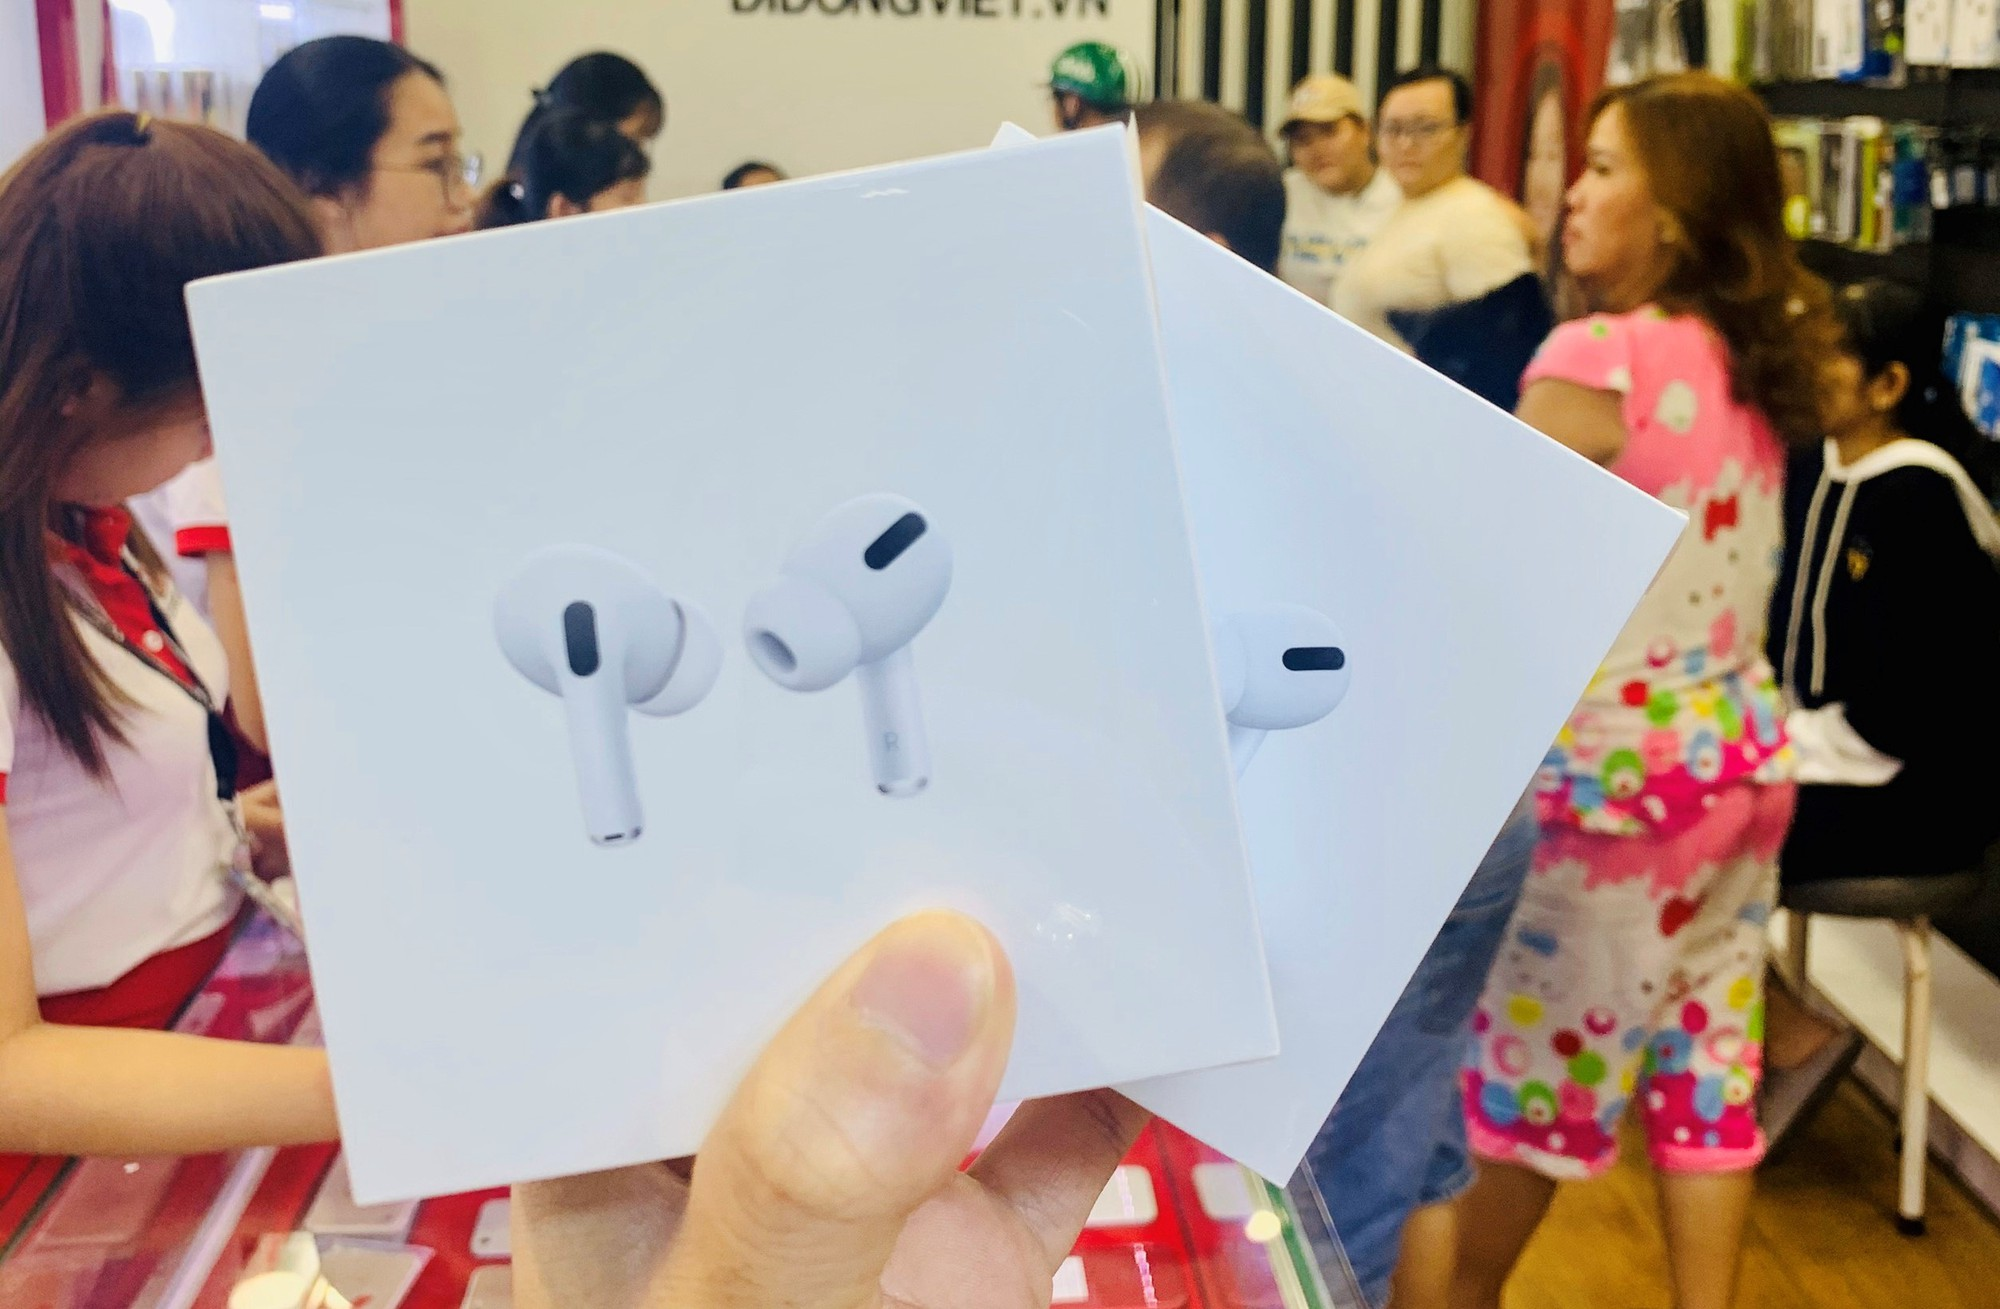 thong-tin-hinh-anh-gia-ca-airpods-pro-truoc-ngay-len-ke-chinh-thuc-cung-iphone-11-1